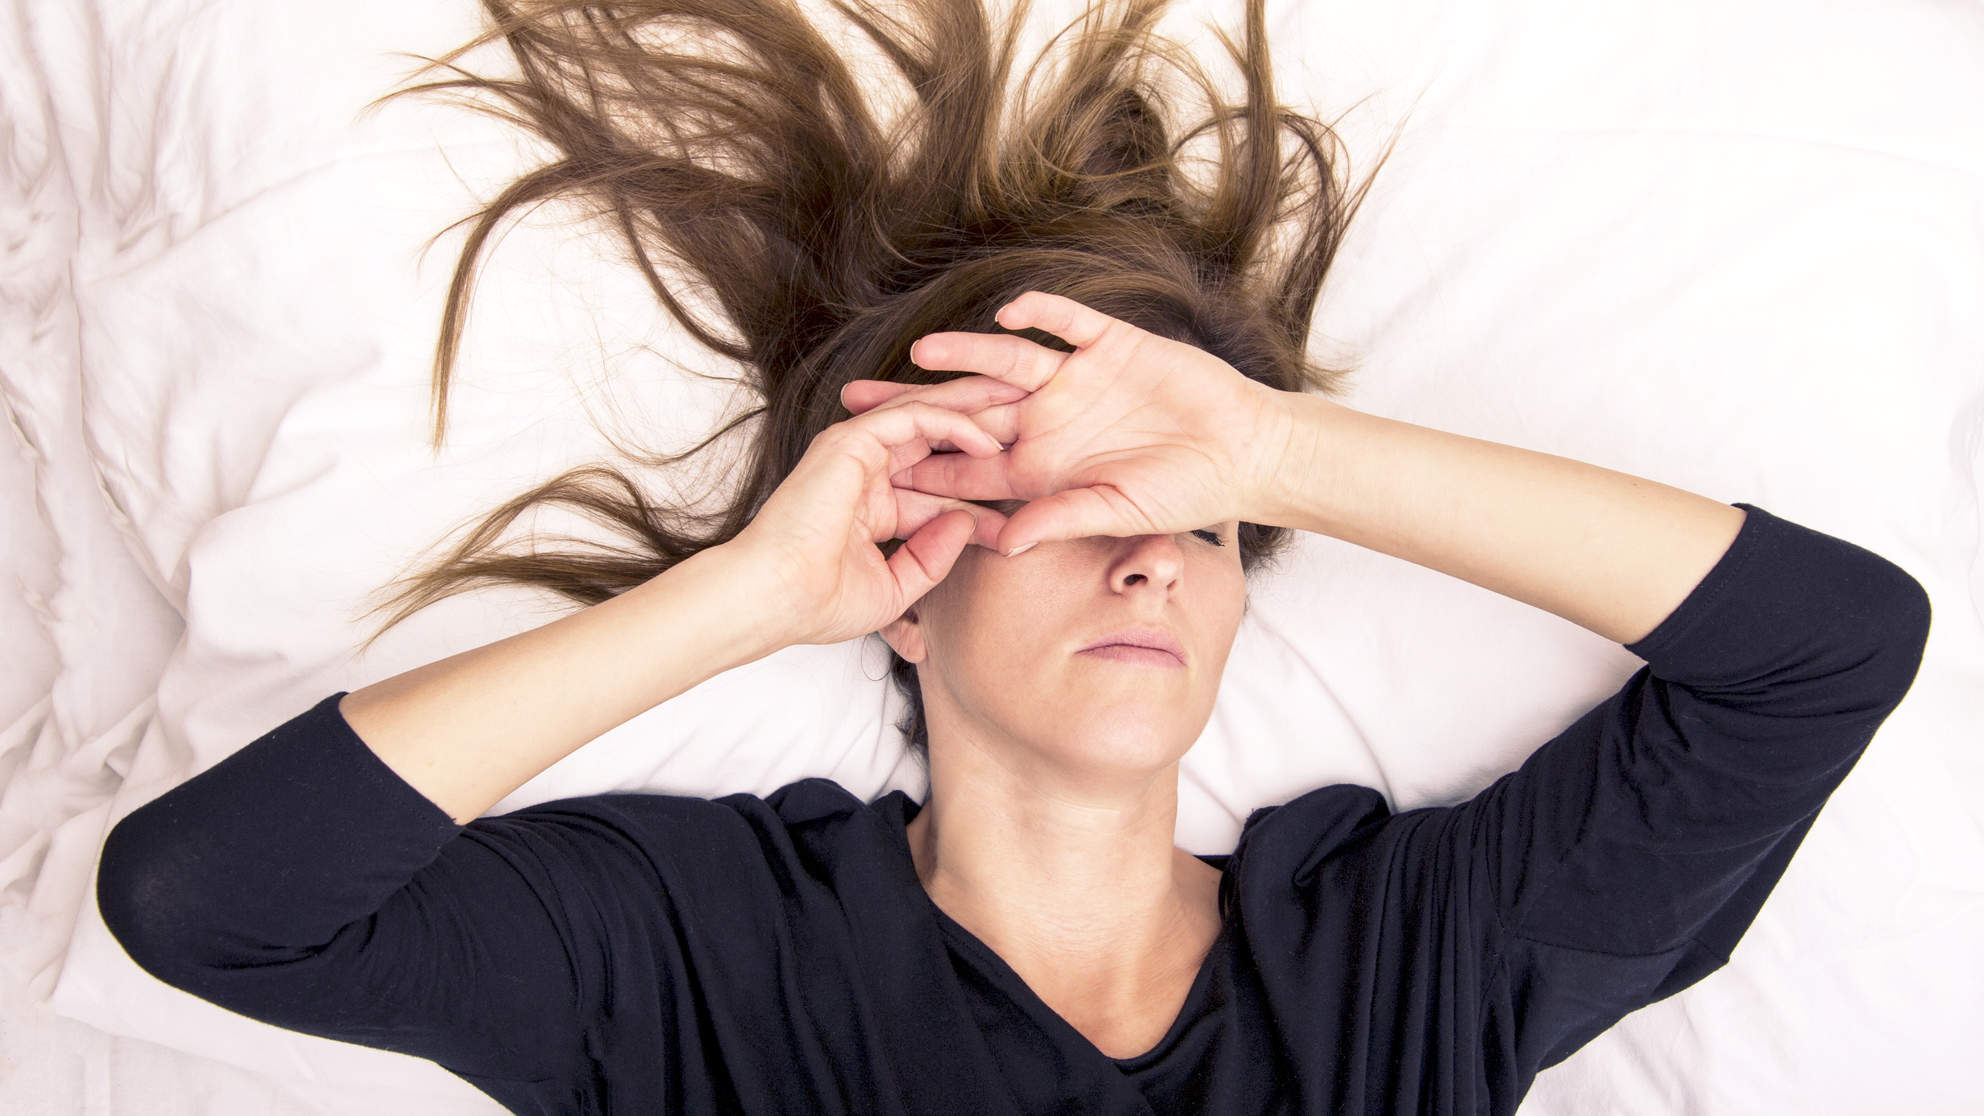 Why Getting More Than 9 Hours of Sleep Every Night Could Be a Bad Thing